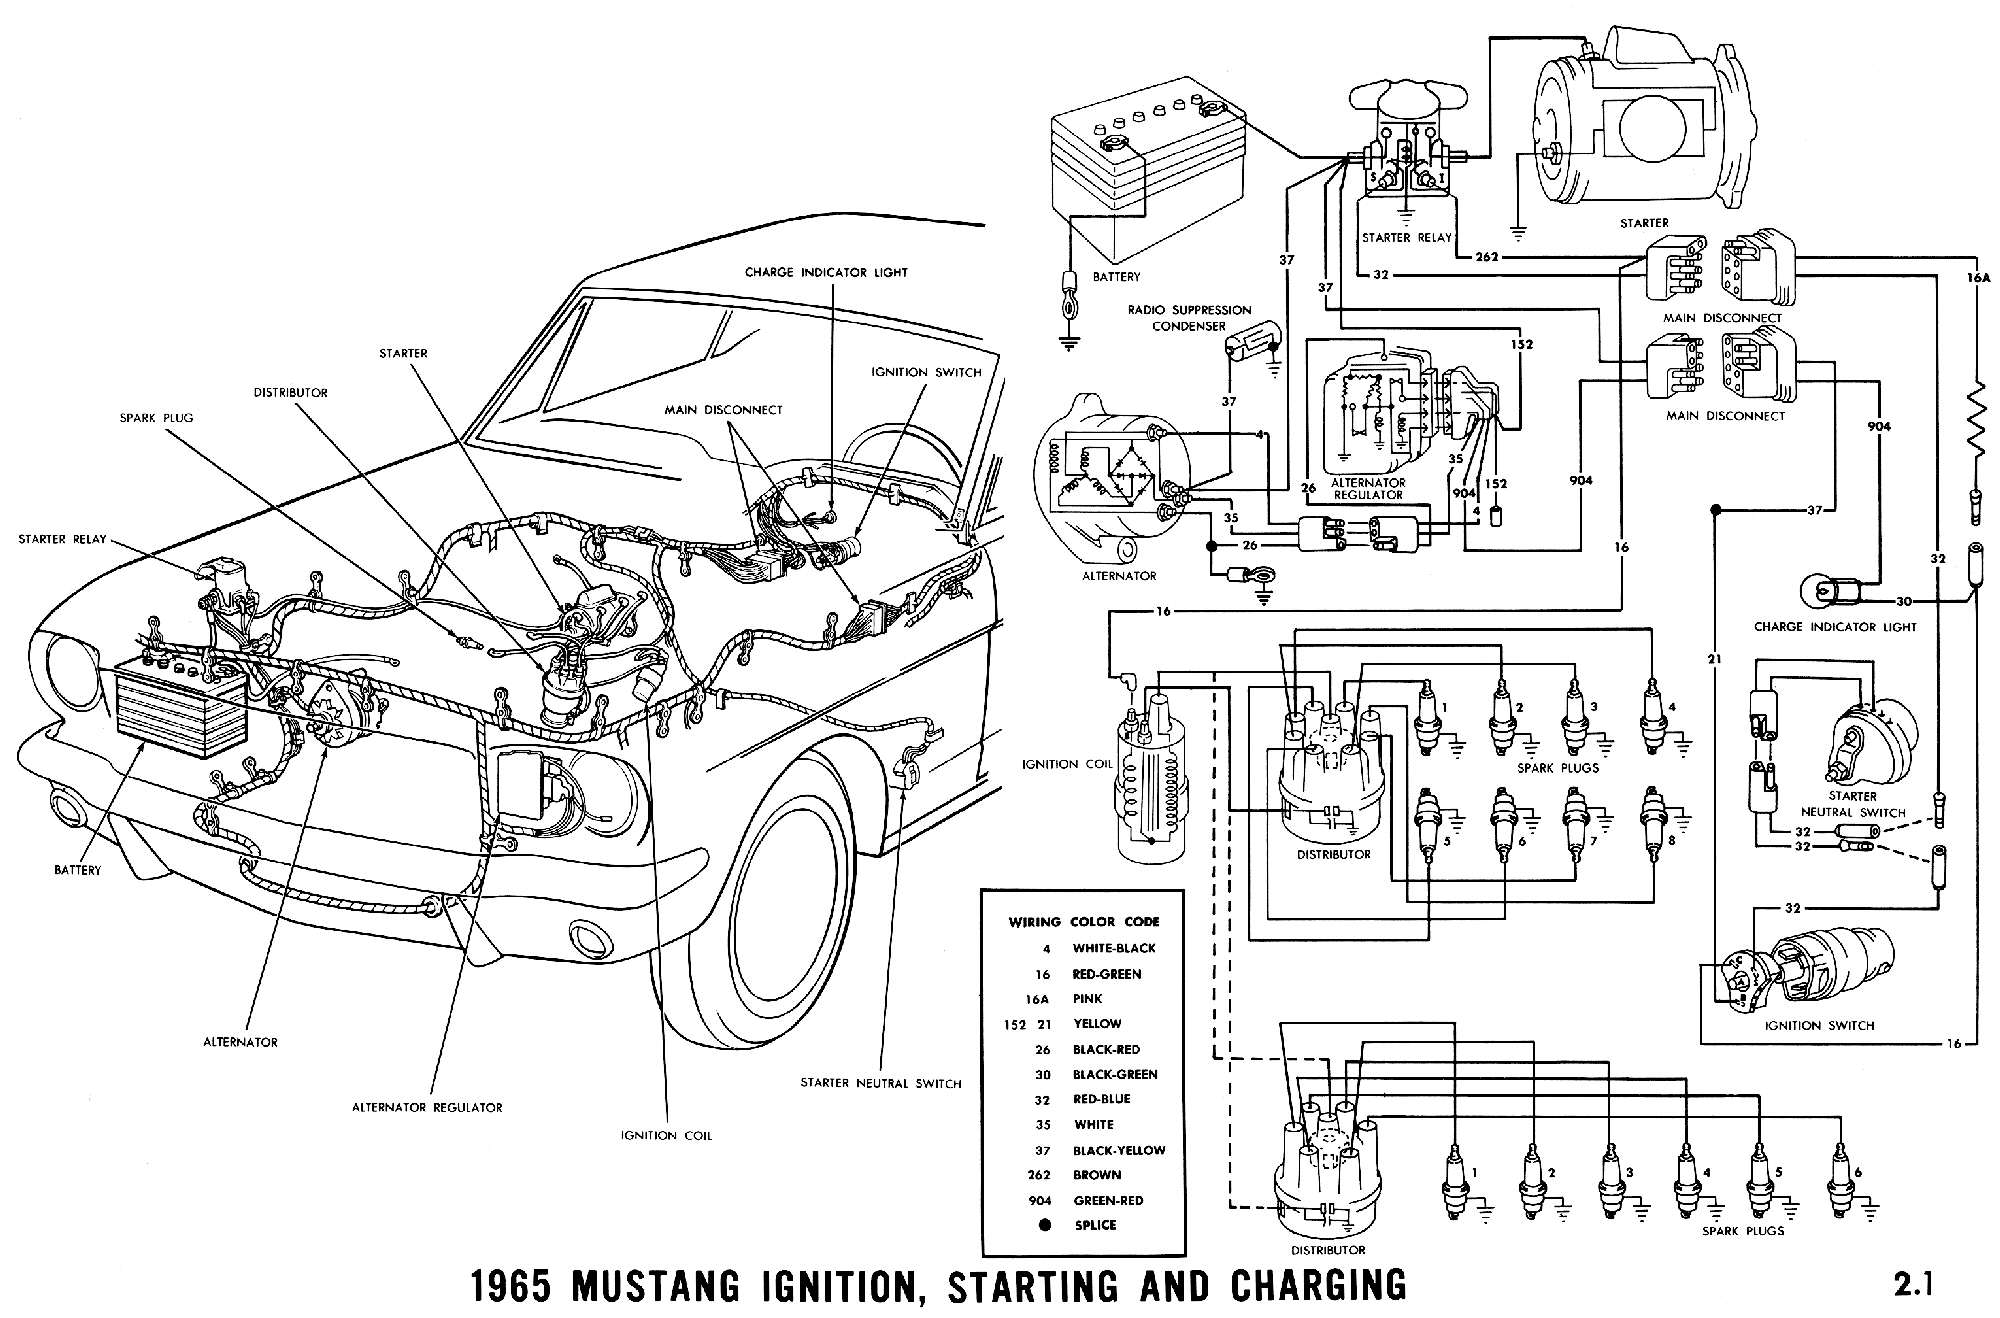 1965c 1965 mustang wiring diagrams average joe restoration wiring diagram for 1966 ford fairlane at gsmx.co